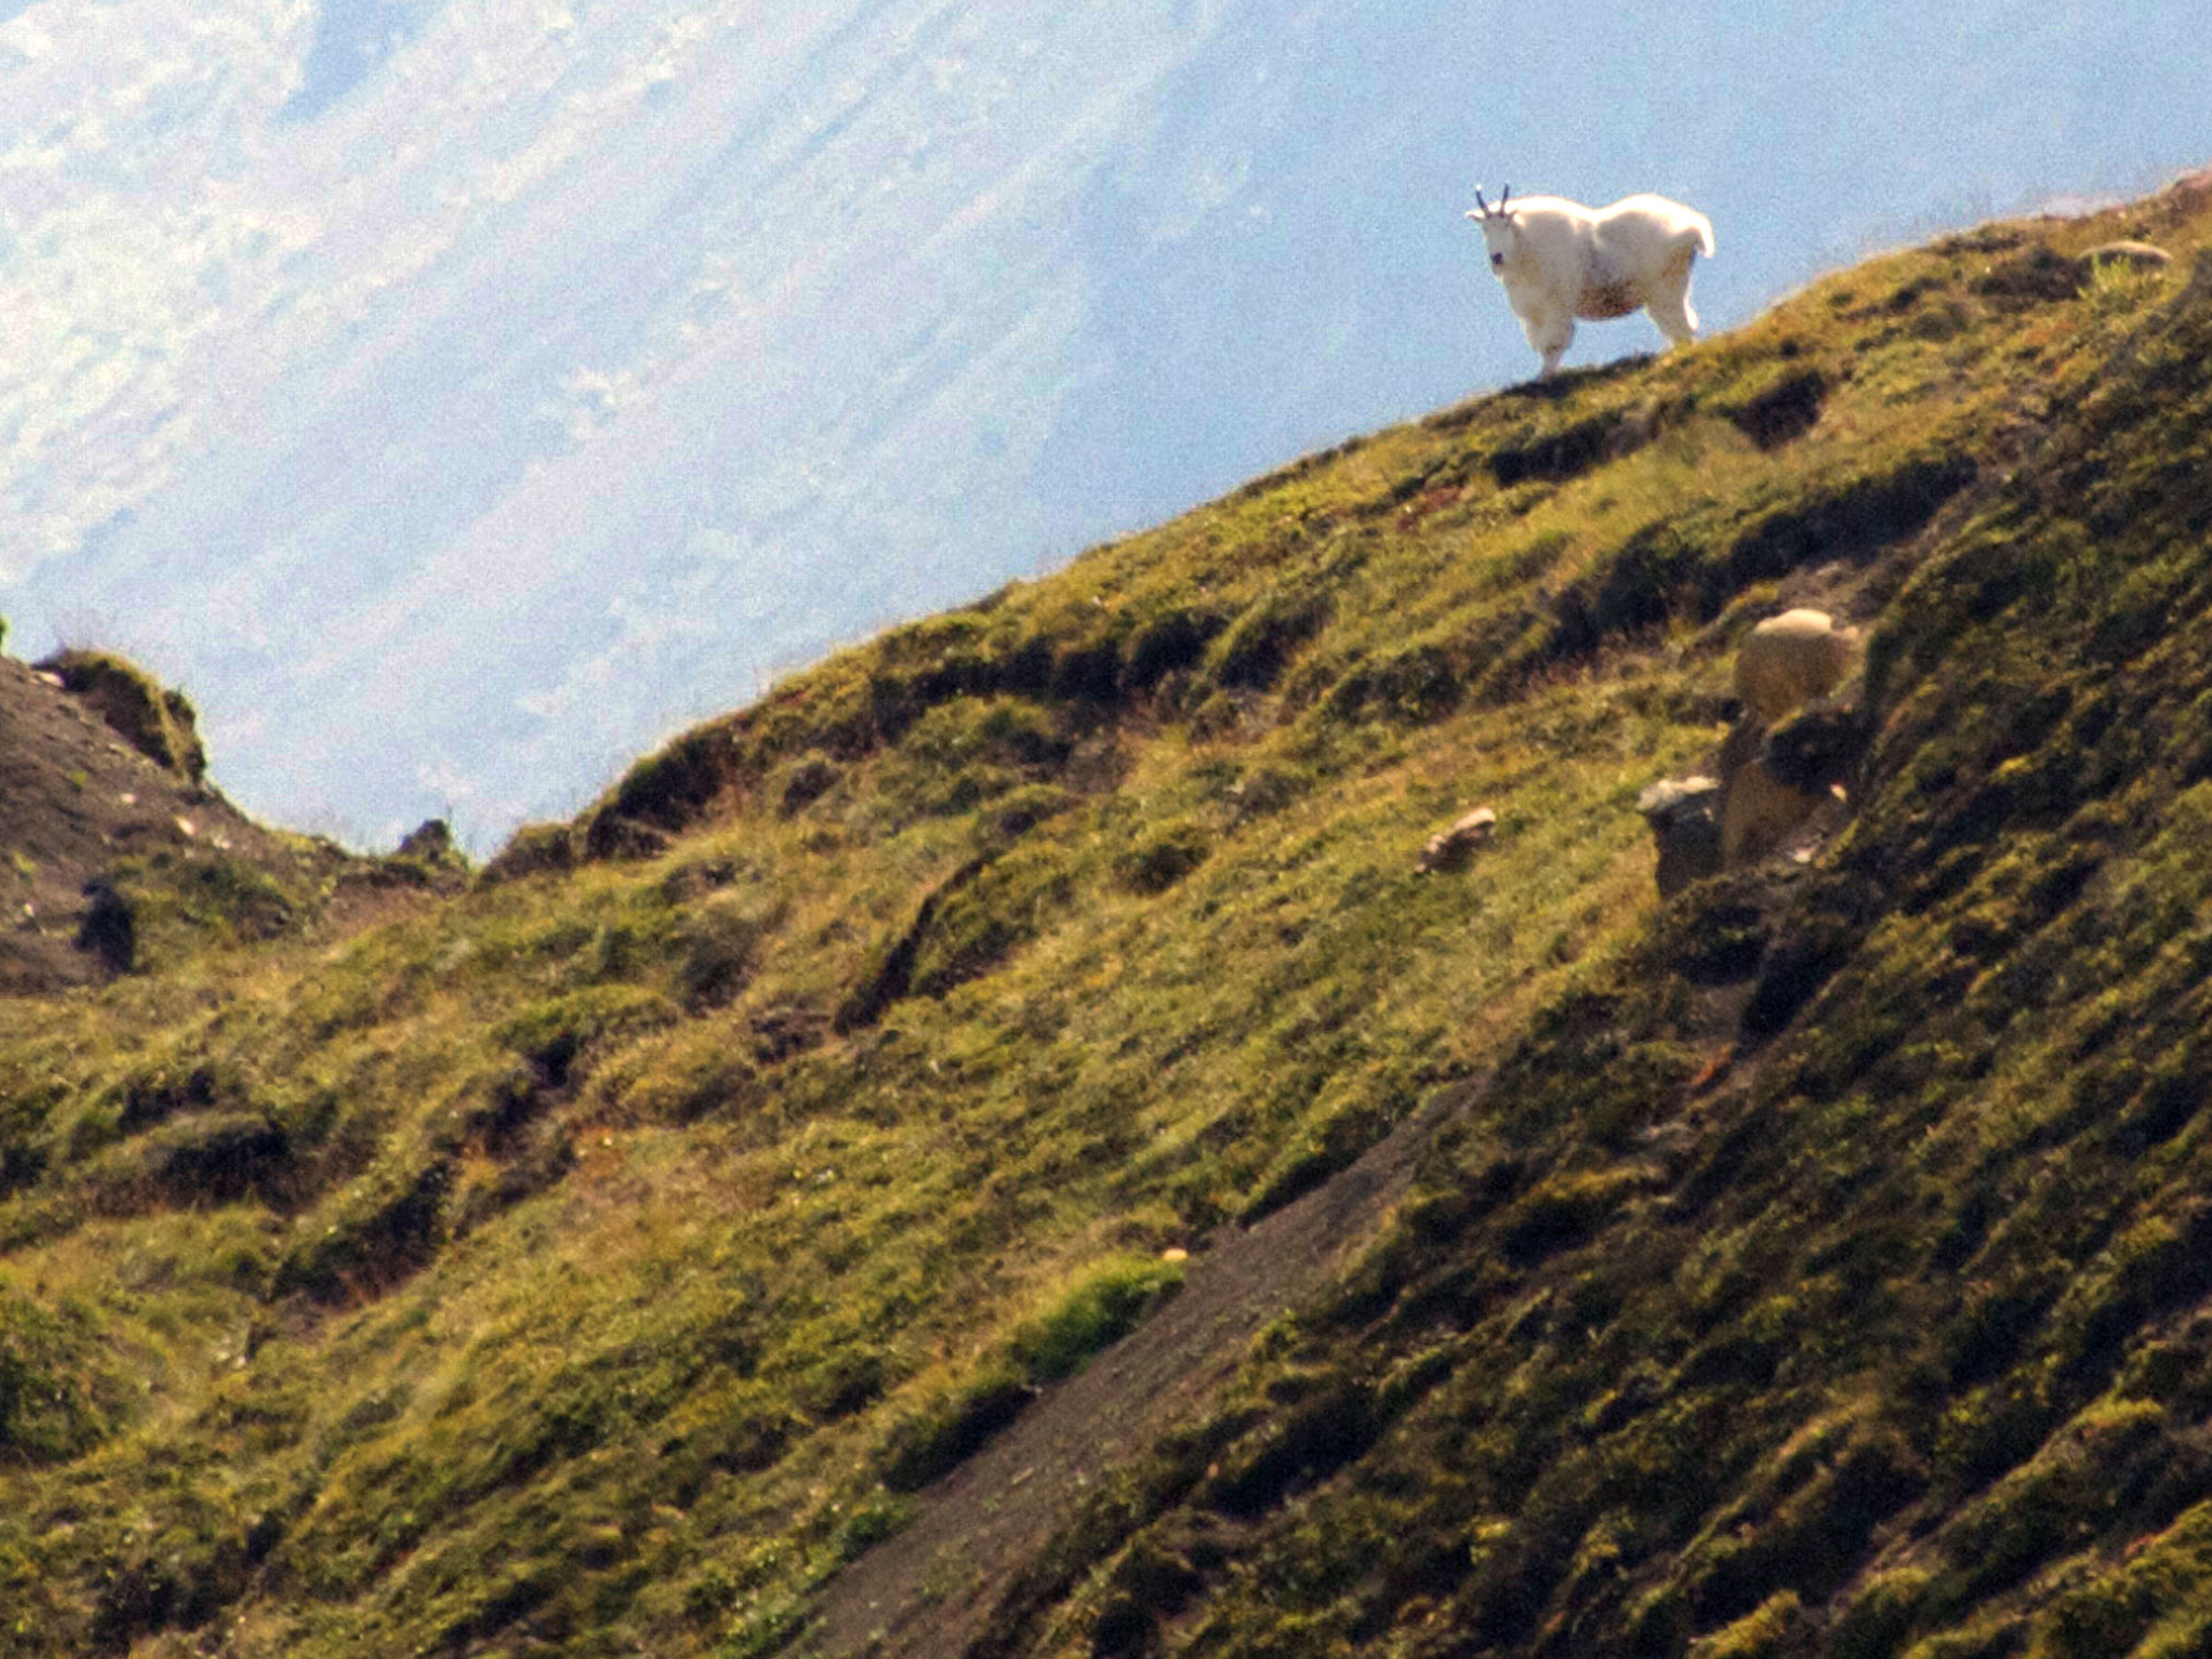 Mountain Goat, Wrangell-St Elias NP - Photo by Tim Giller